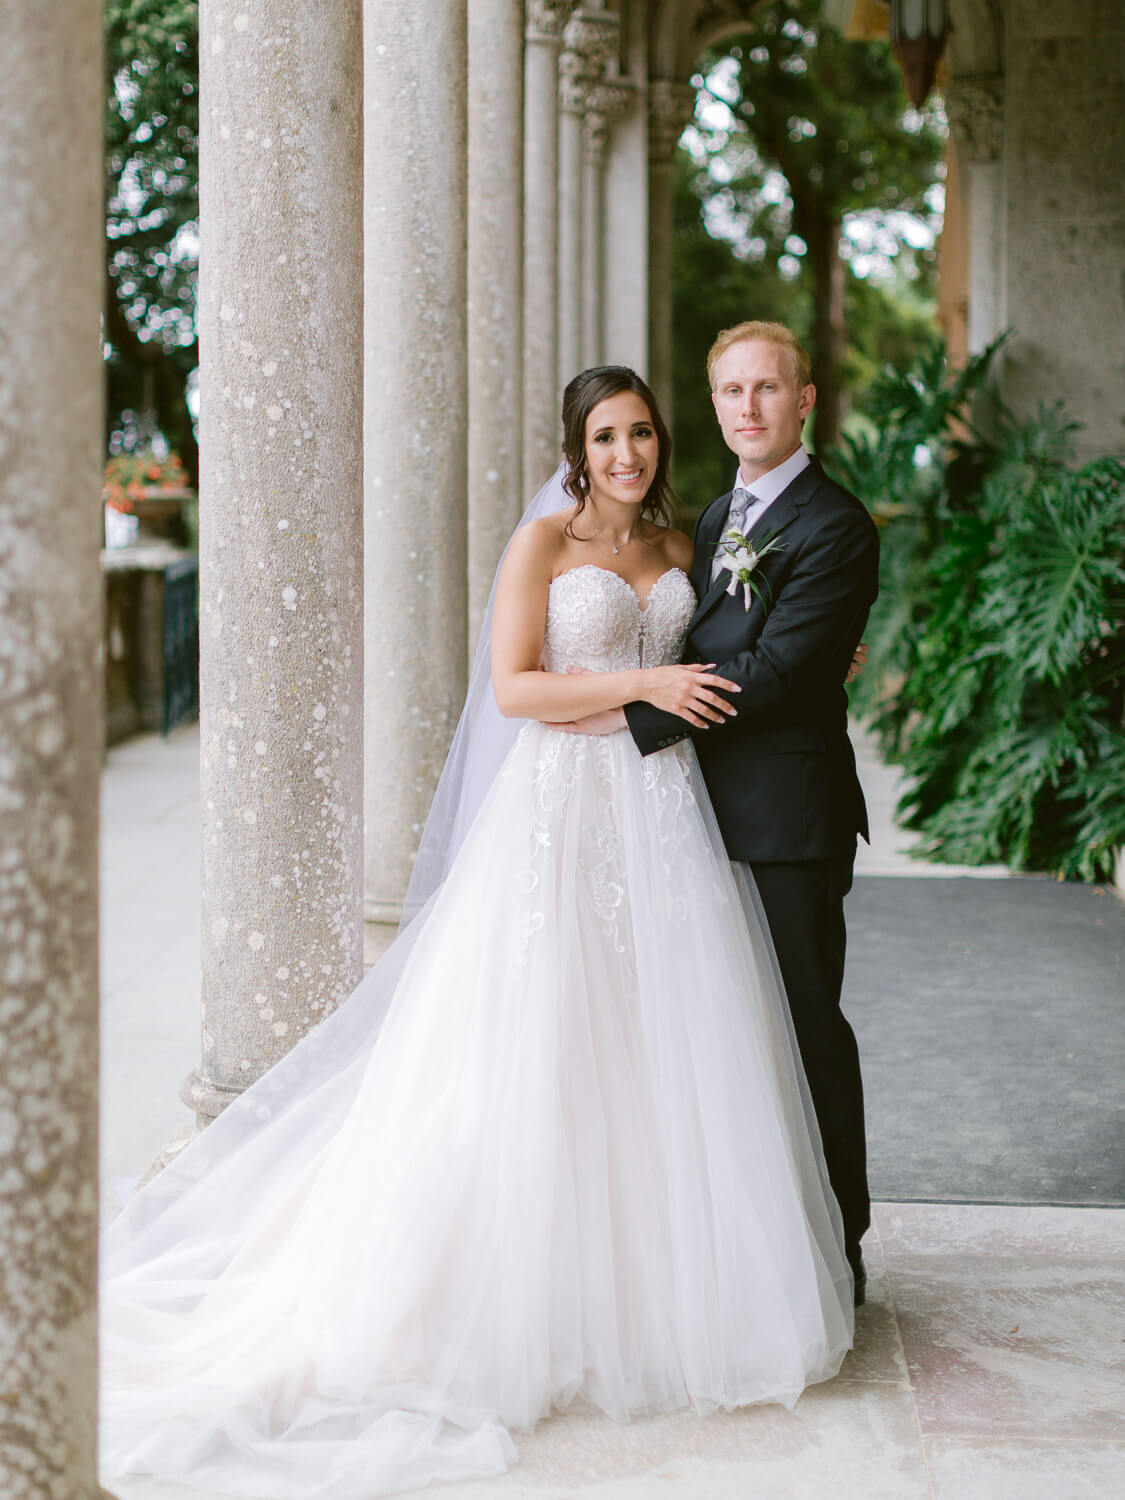 sweet newlyweds in Monserrate Palace Sintra Wedding by Portugal Wedding Photographer